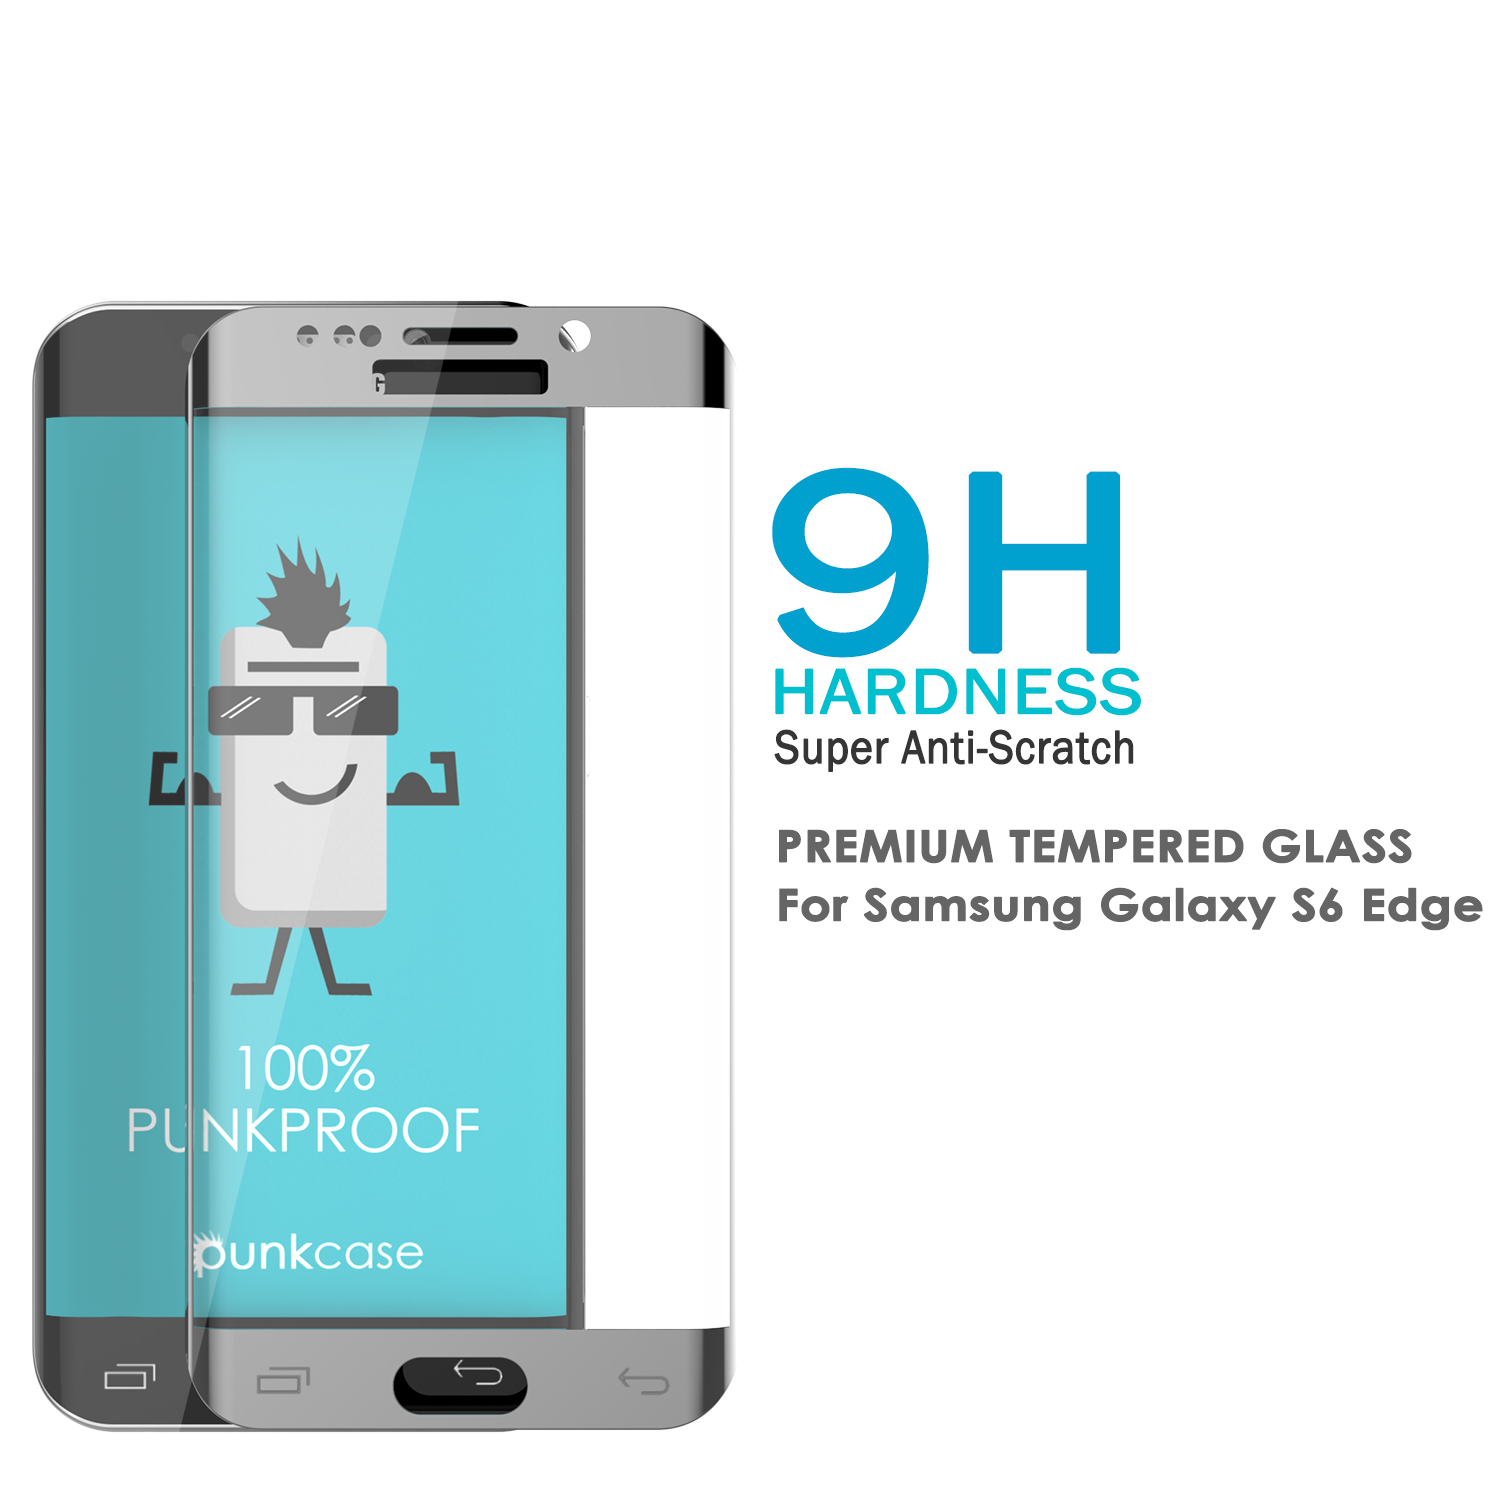 Galaxy S6 Edge Silver Punkcase Glass SHIELD Tempered Glass Screen Protector 0.33mm Thick 9H Glass - PunkCase NZ